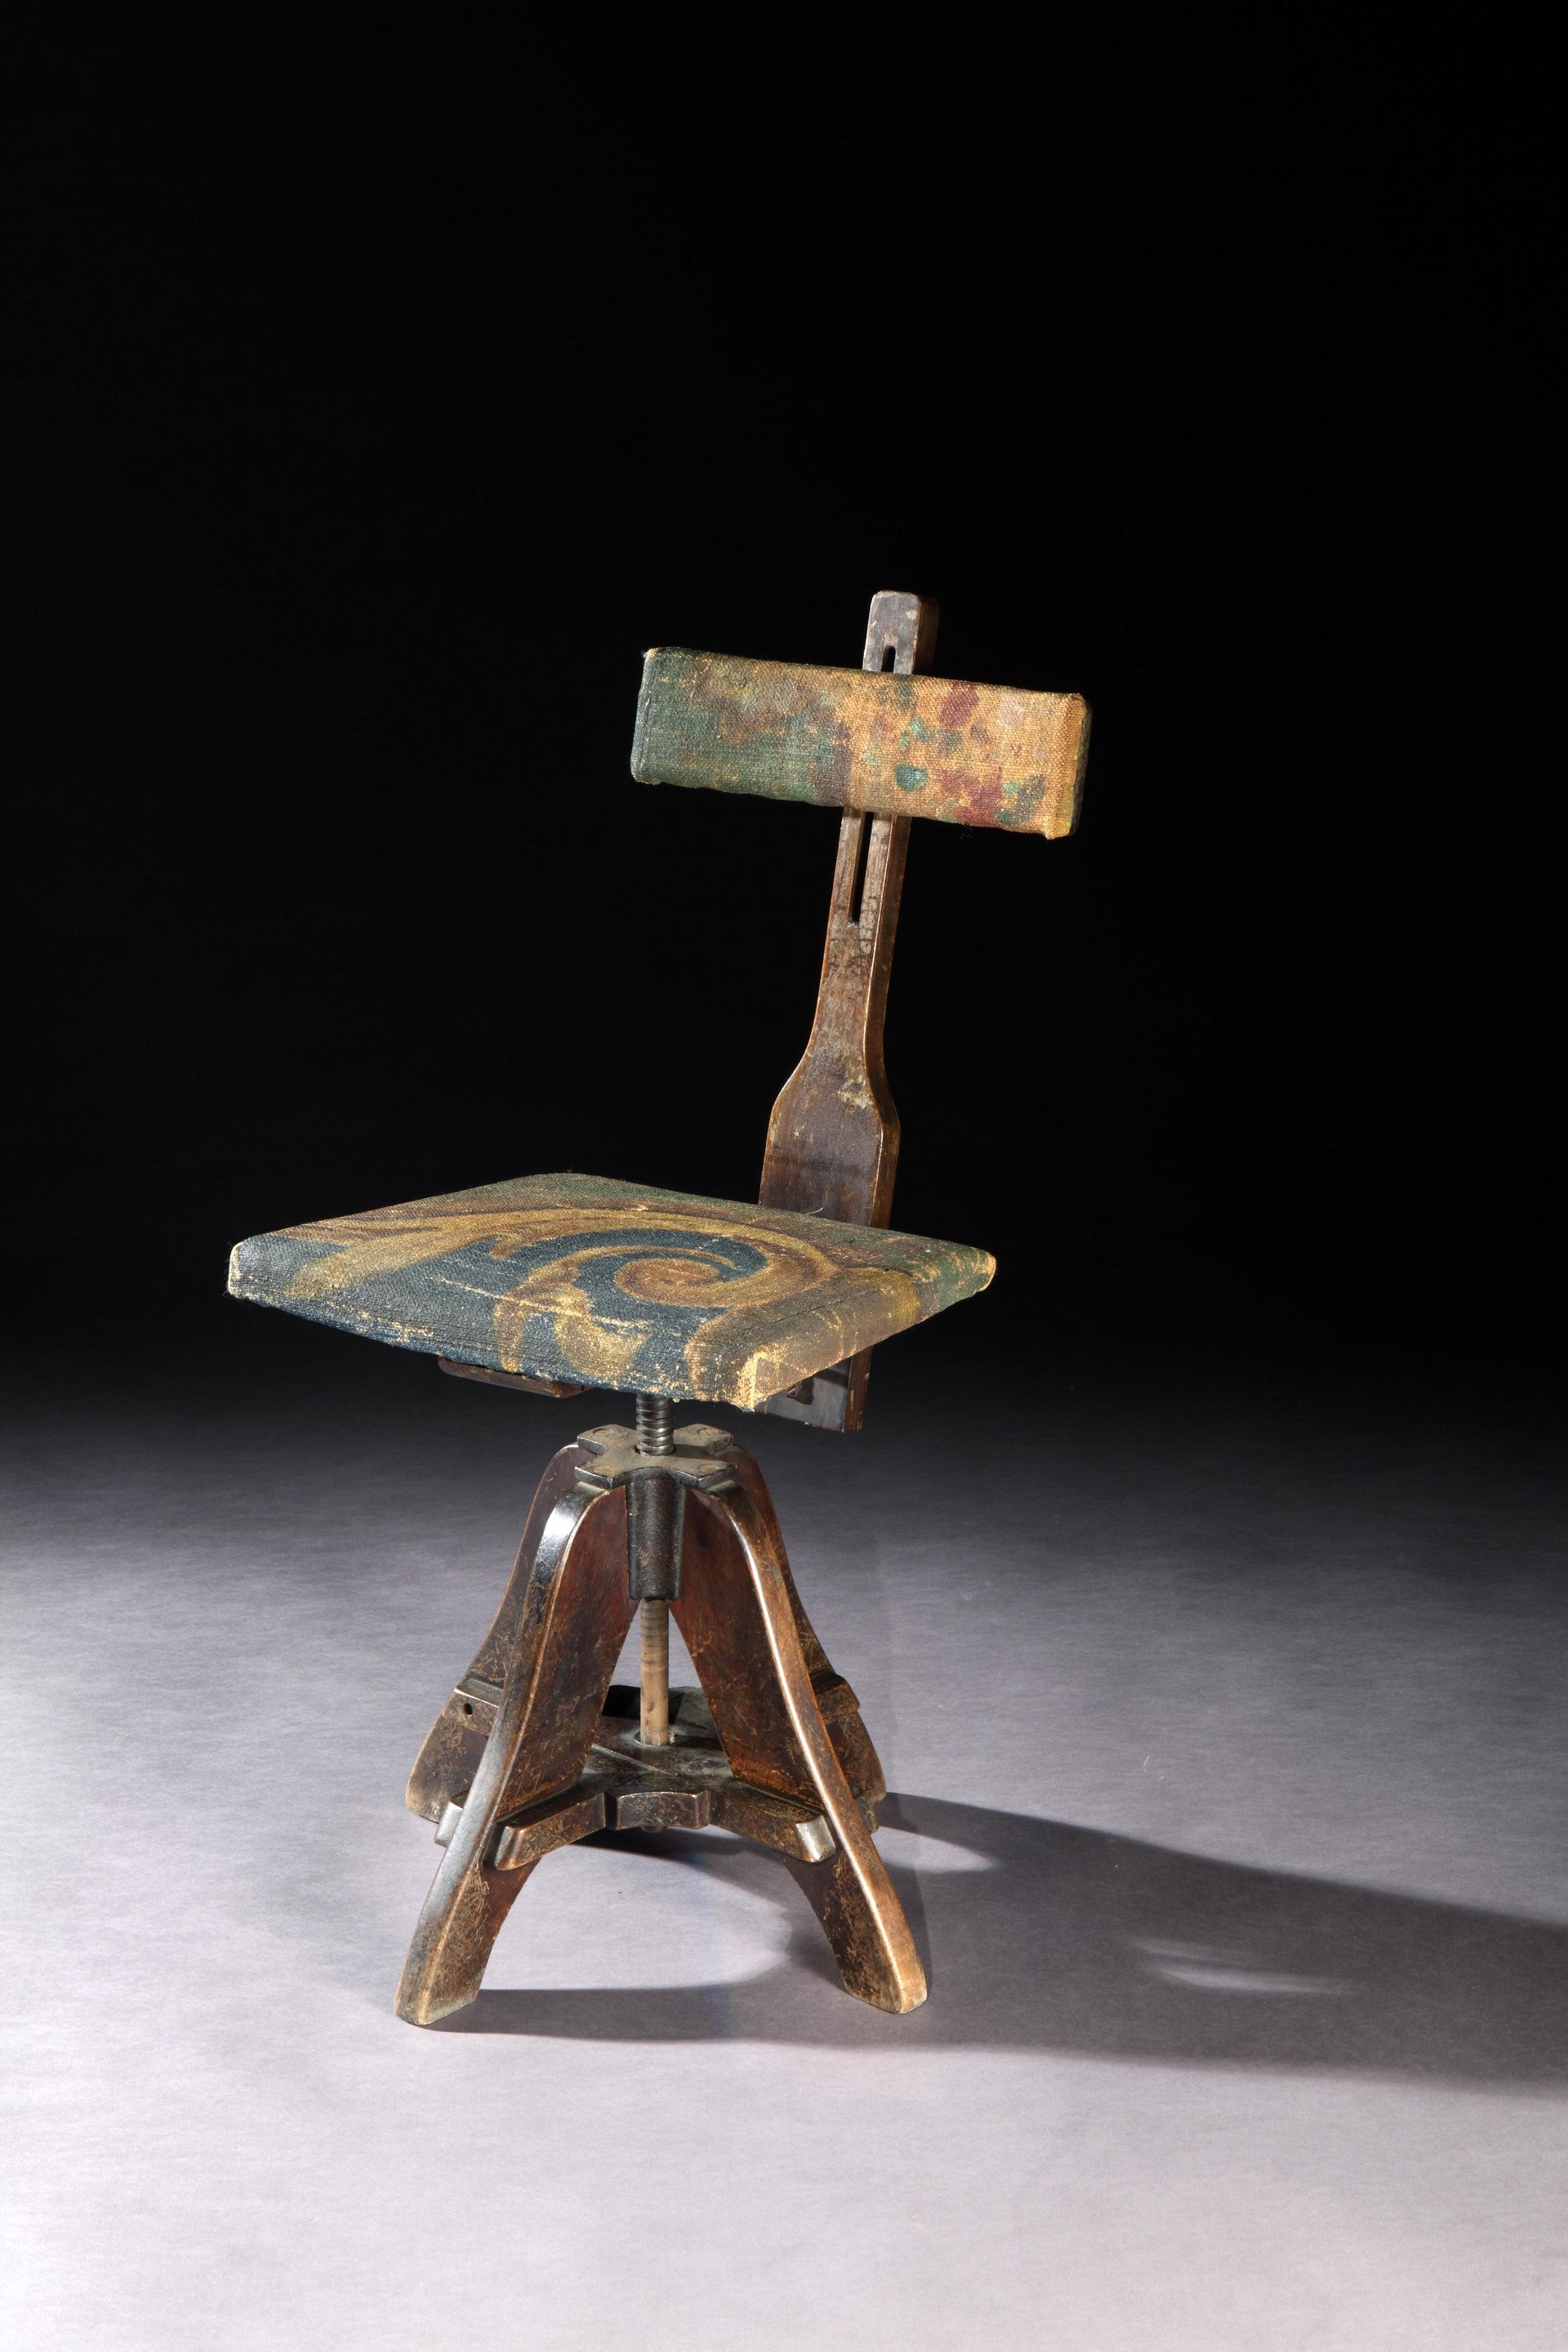 Unusual Revolving Artist's Chair